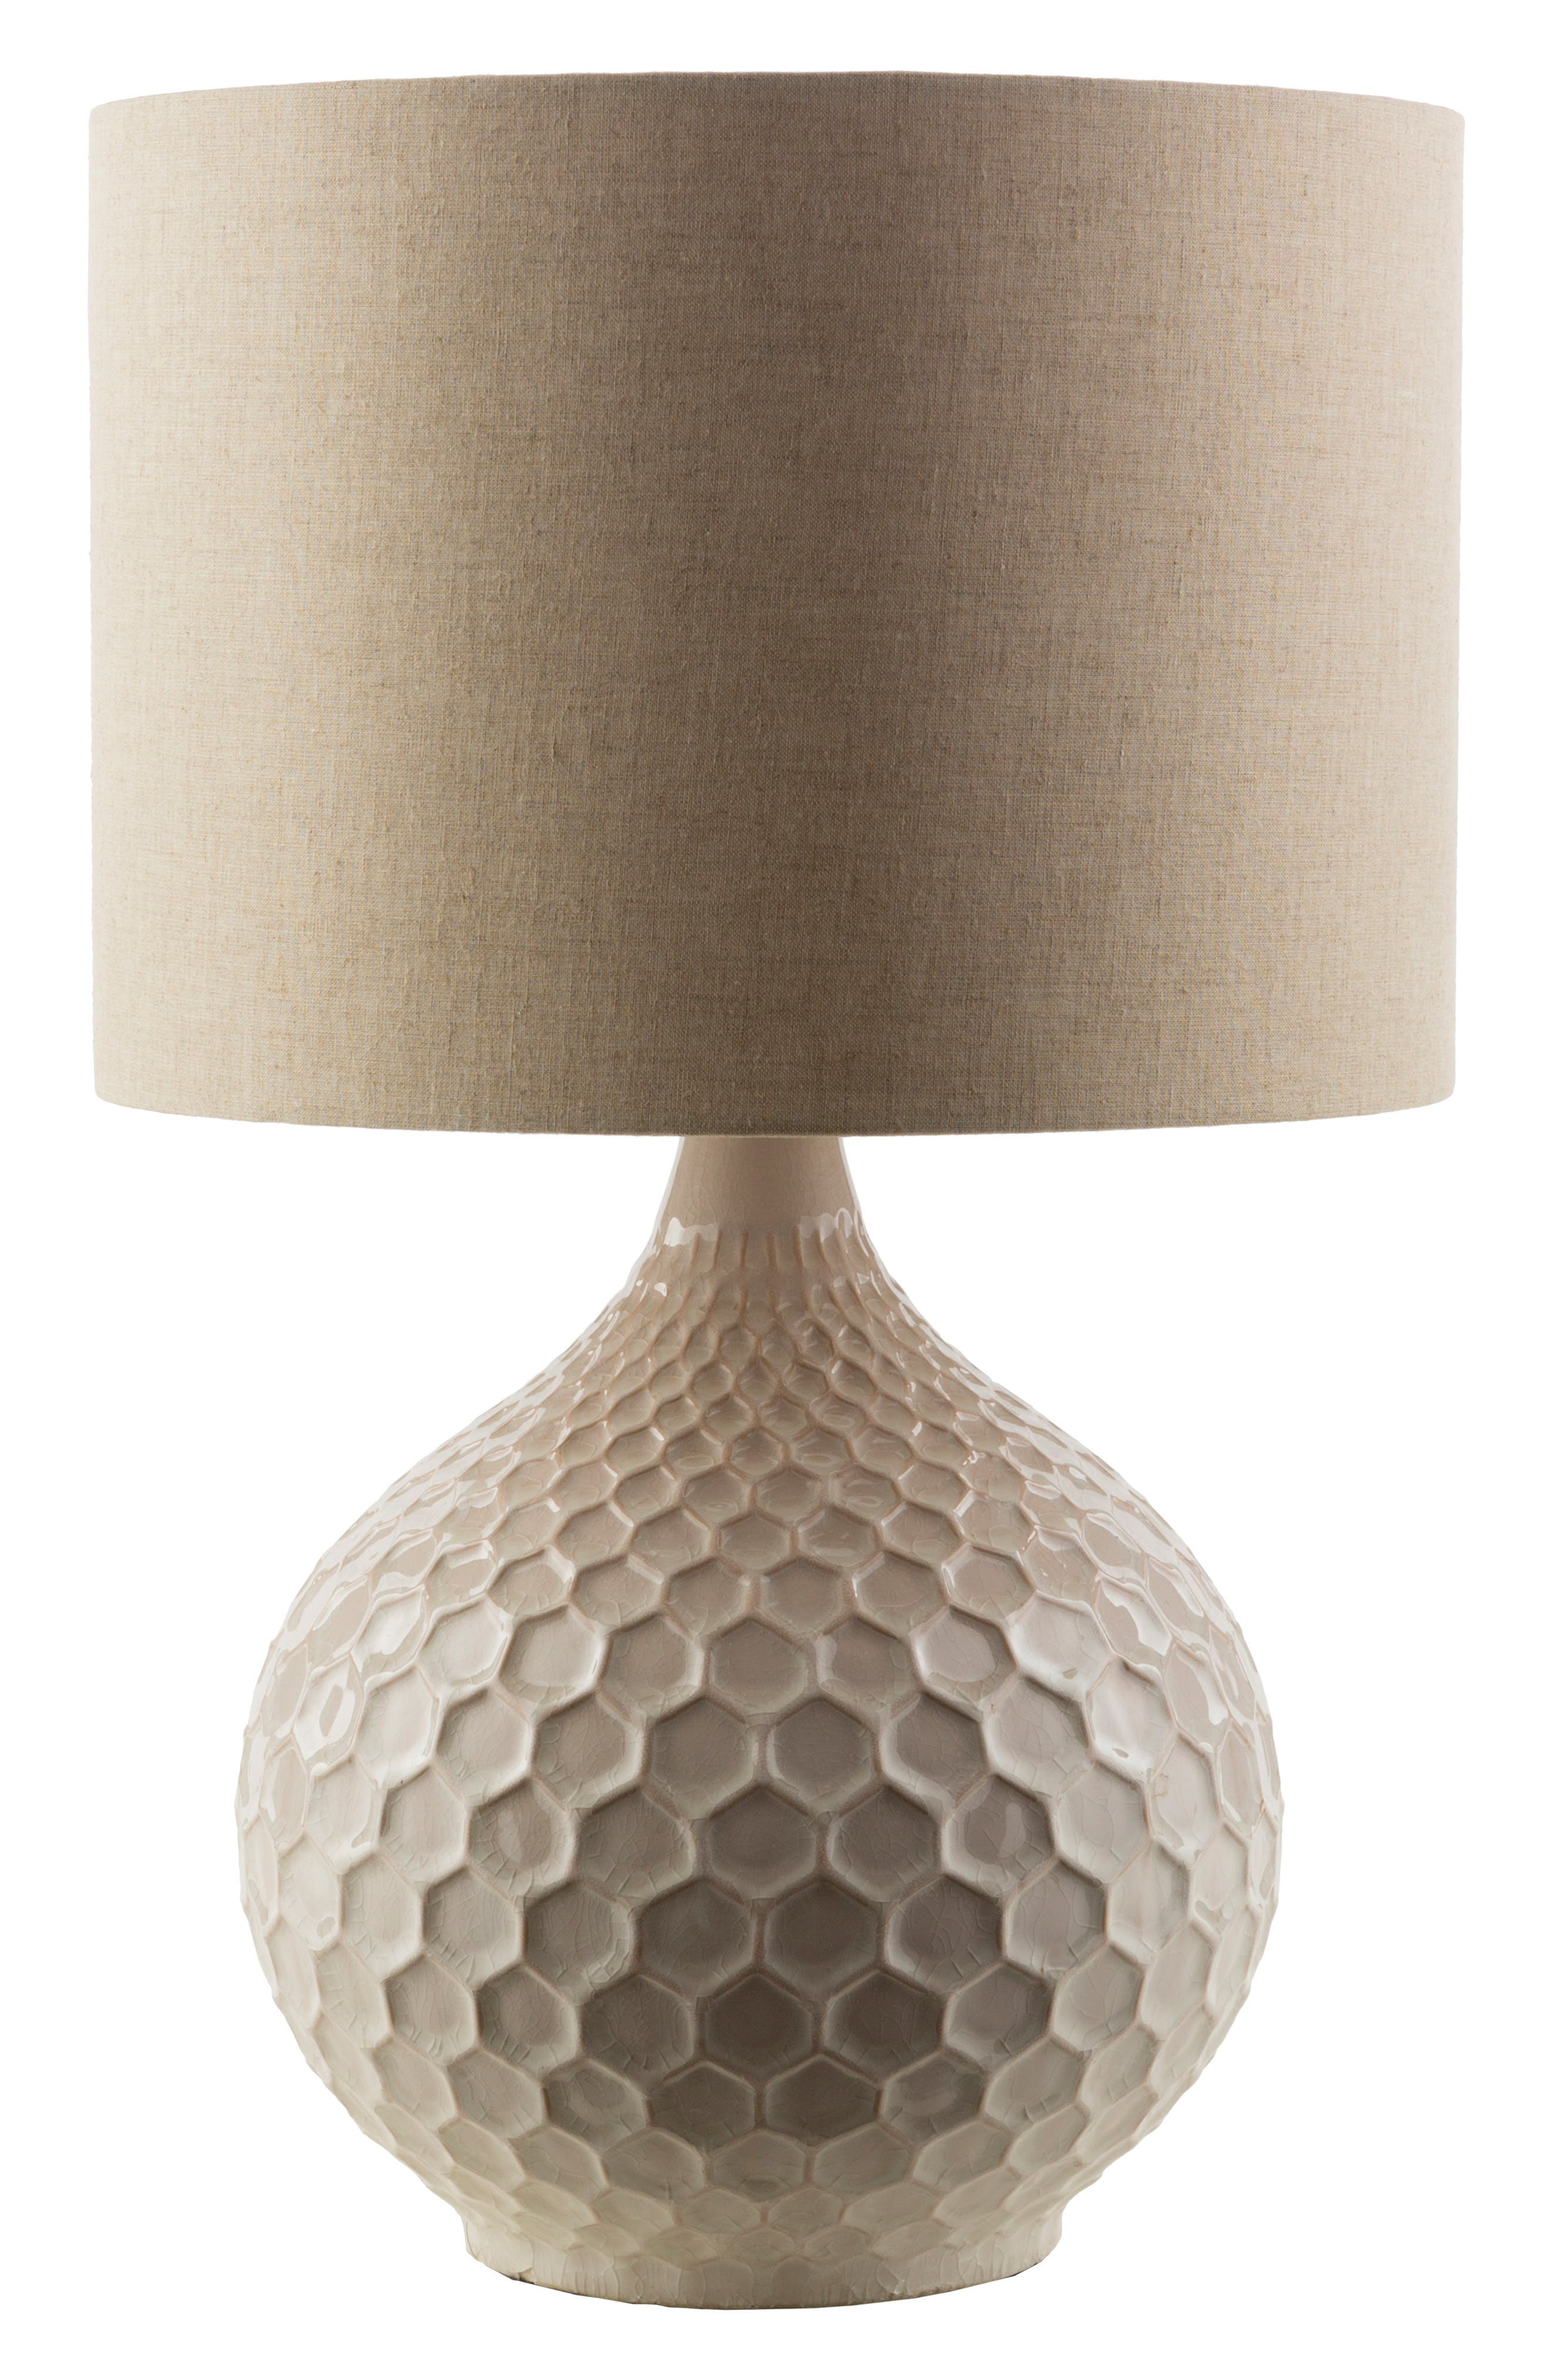 Surya Home Blakely Table Lamp Size One Size  Beige